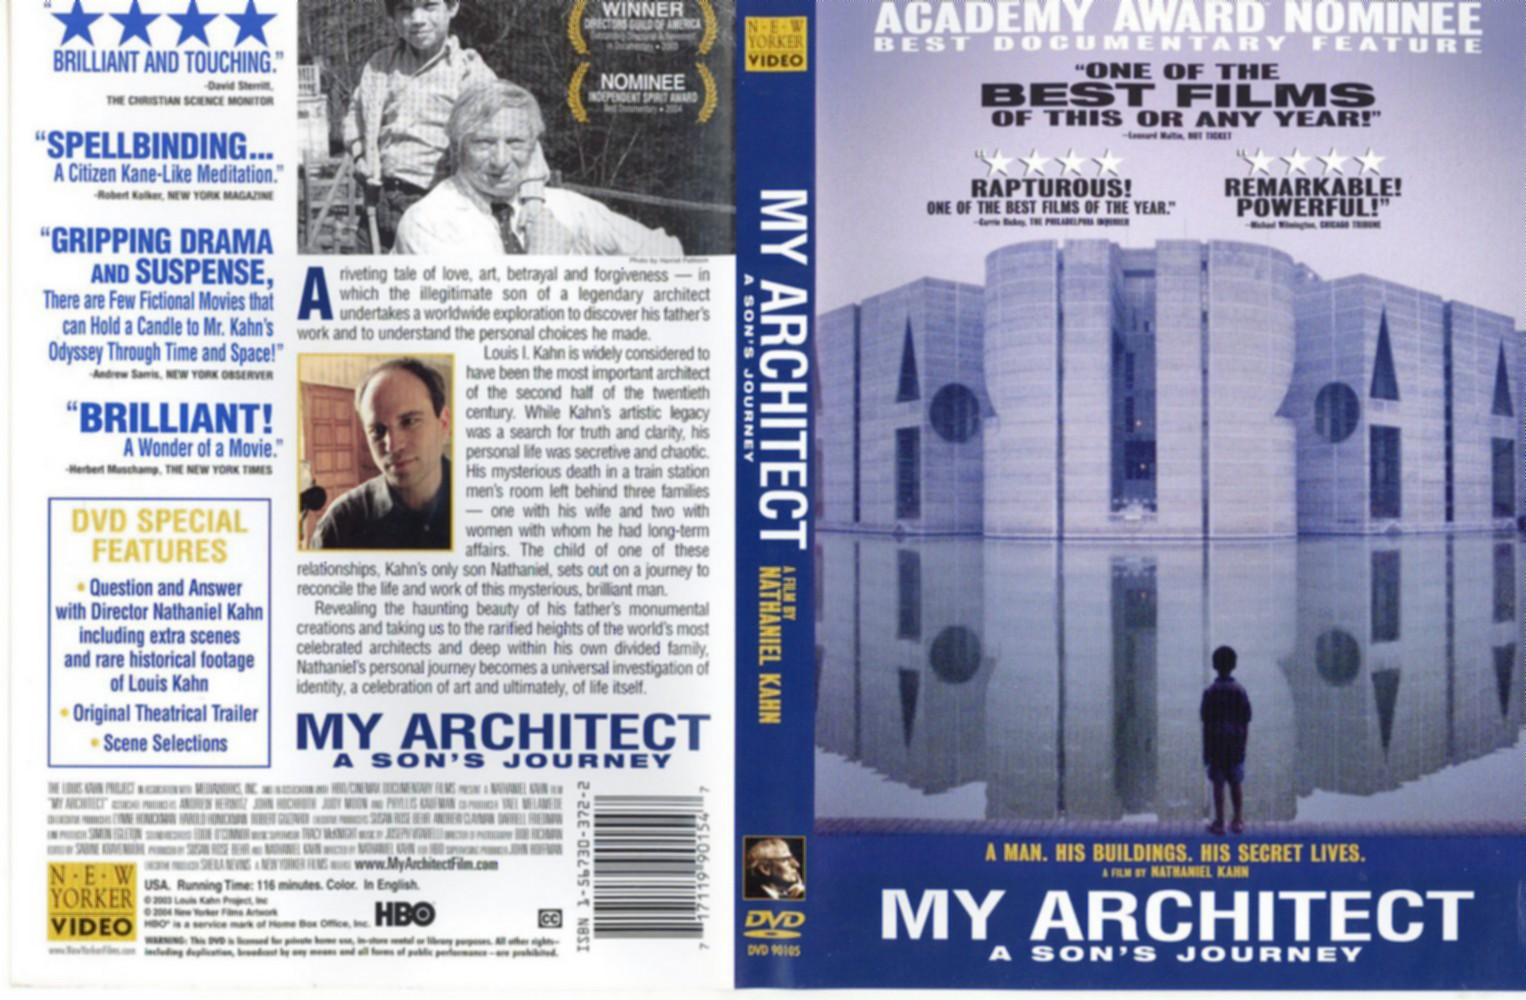 My Architect Movie Review Film Summary 2004 Roger Ebert